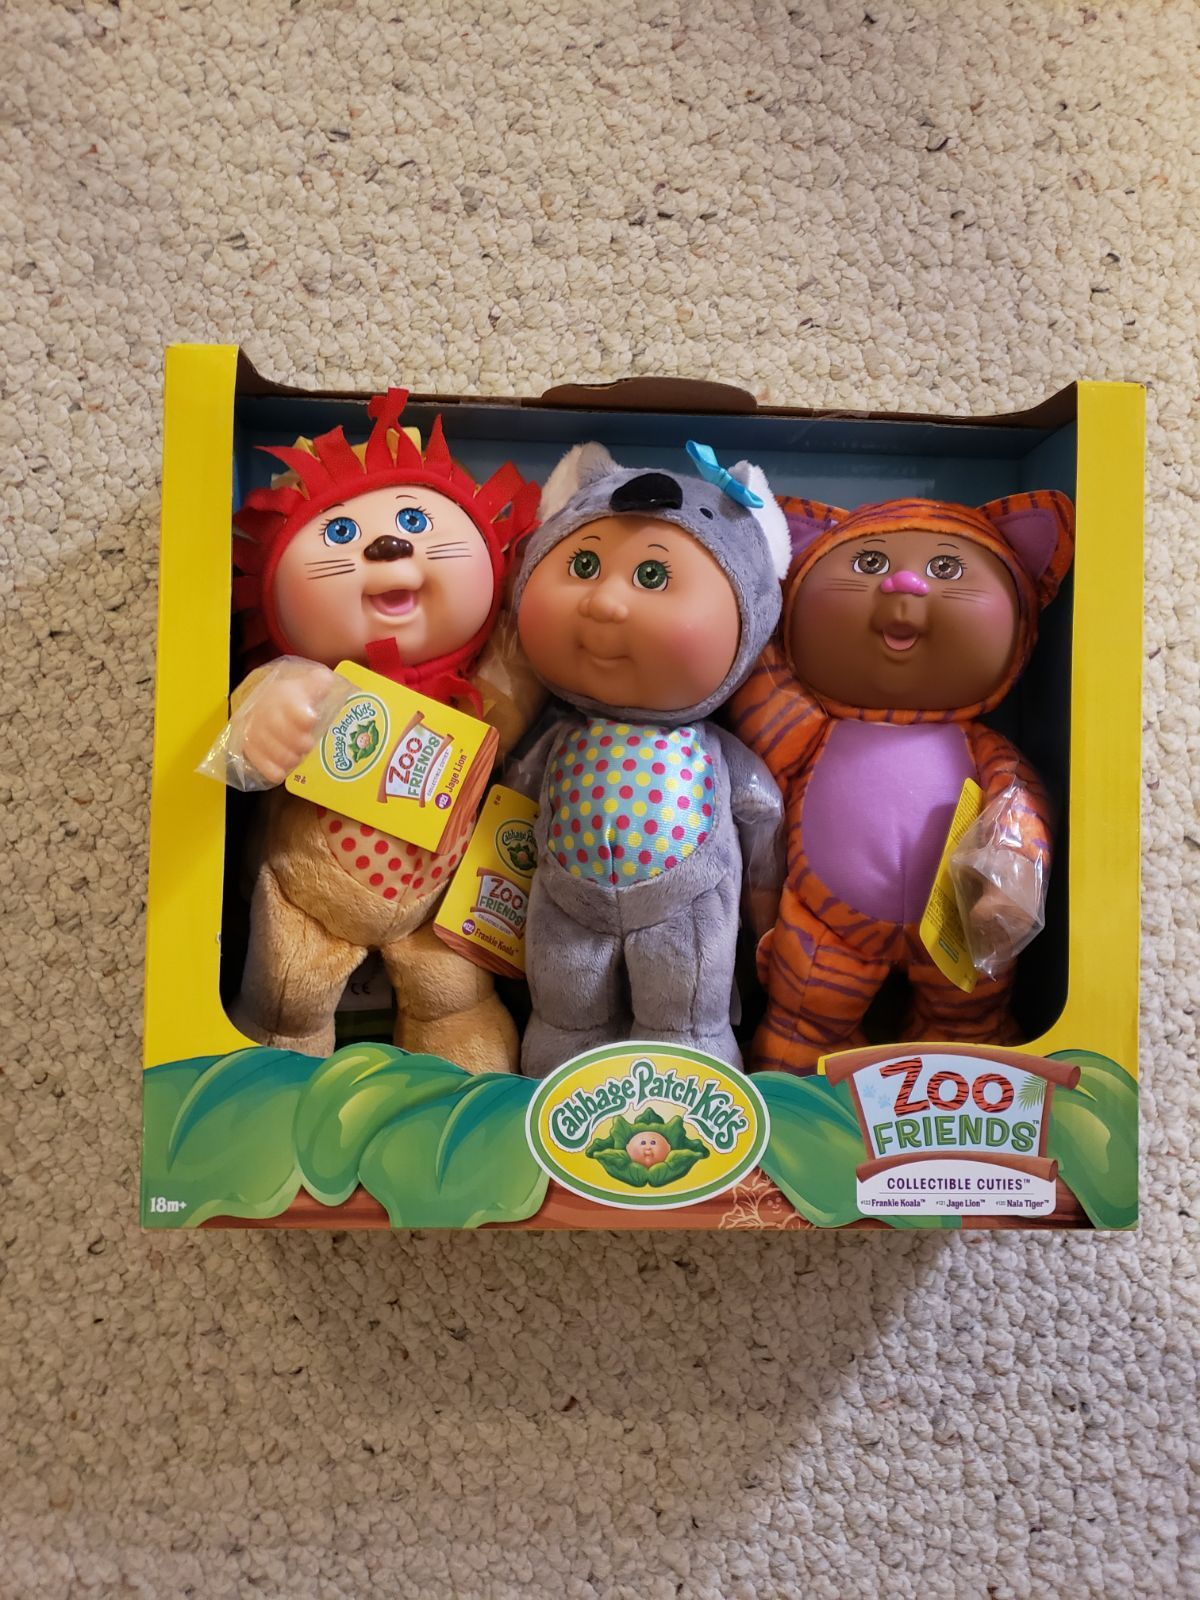 Cabbage Patch Dolls Zoo Friends Collectables This Set Is Jaye Lion Frankie Koala And Nala Cabbage Patch Dolls Cabbage Patch Kids Cabbage Patch Kids Dolls